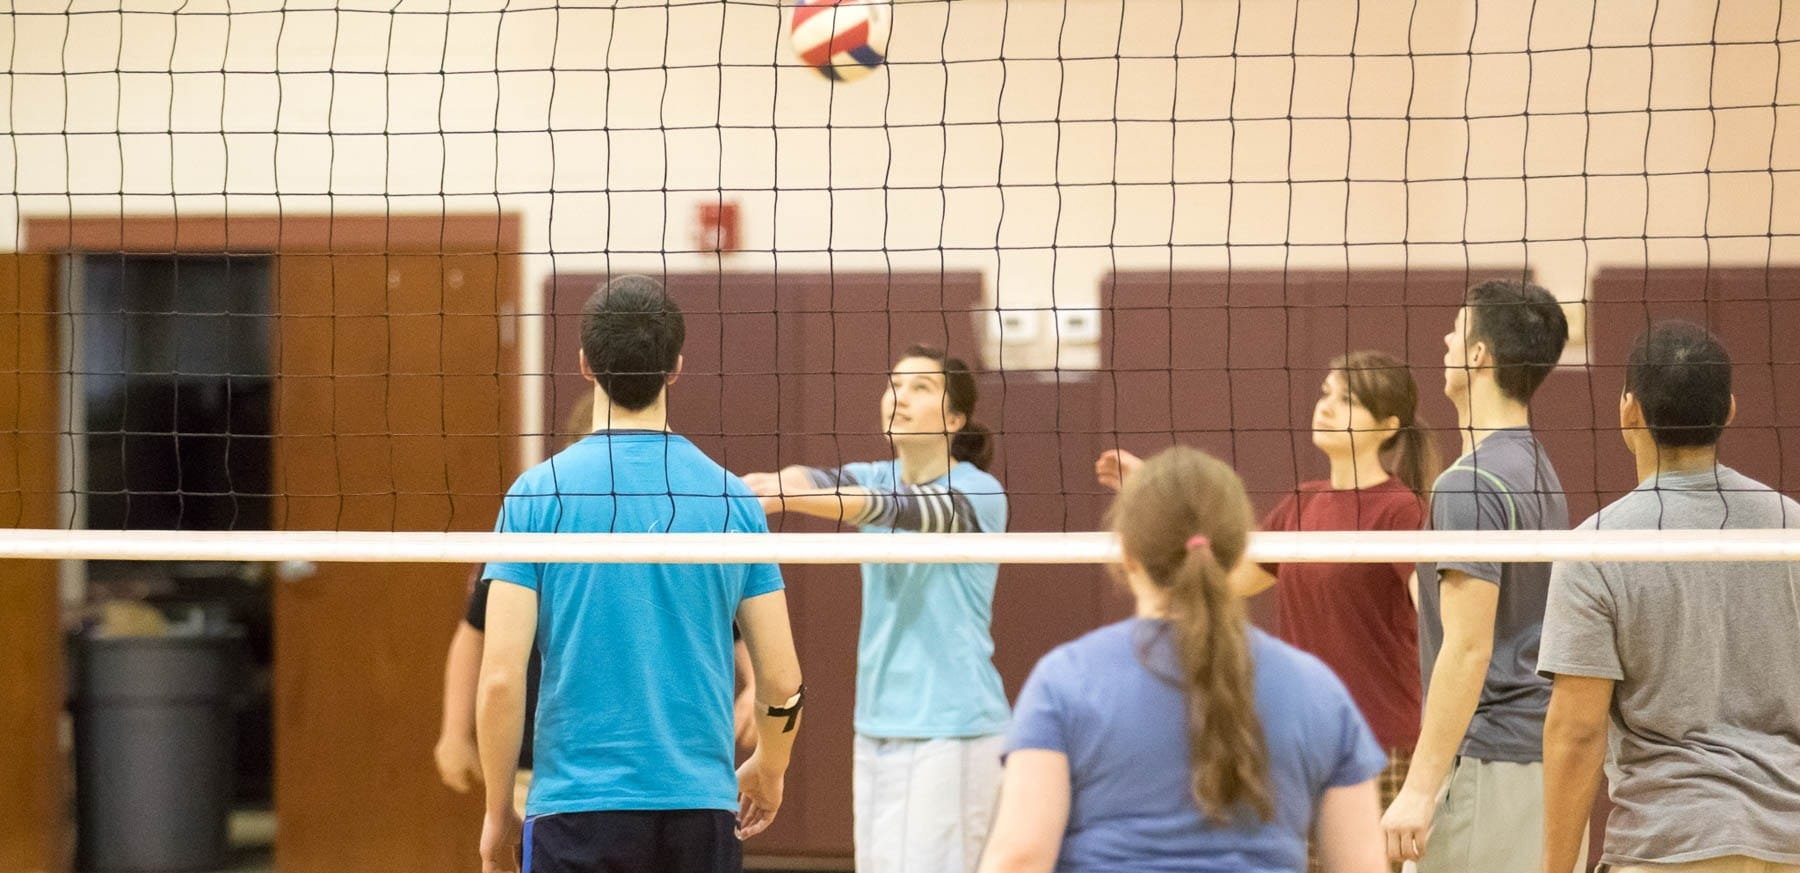 Fairhaven Baptist College Volleyball Marathon 2016 (9 of 20)